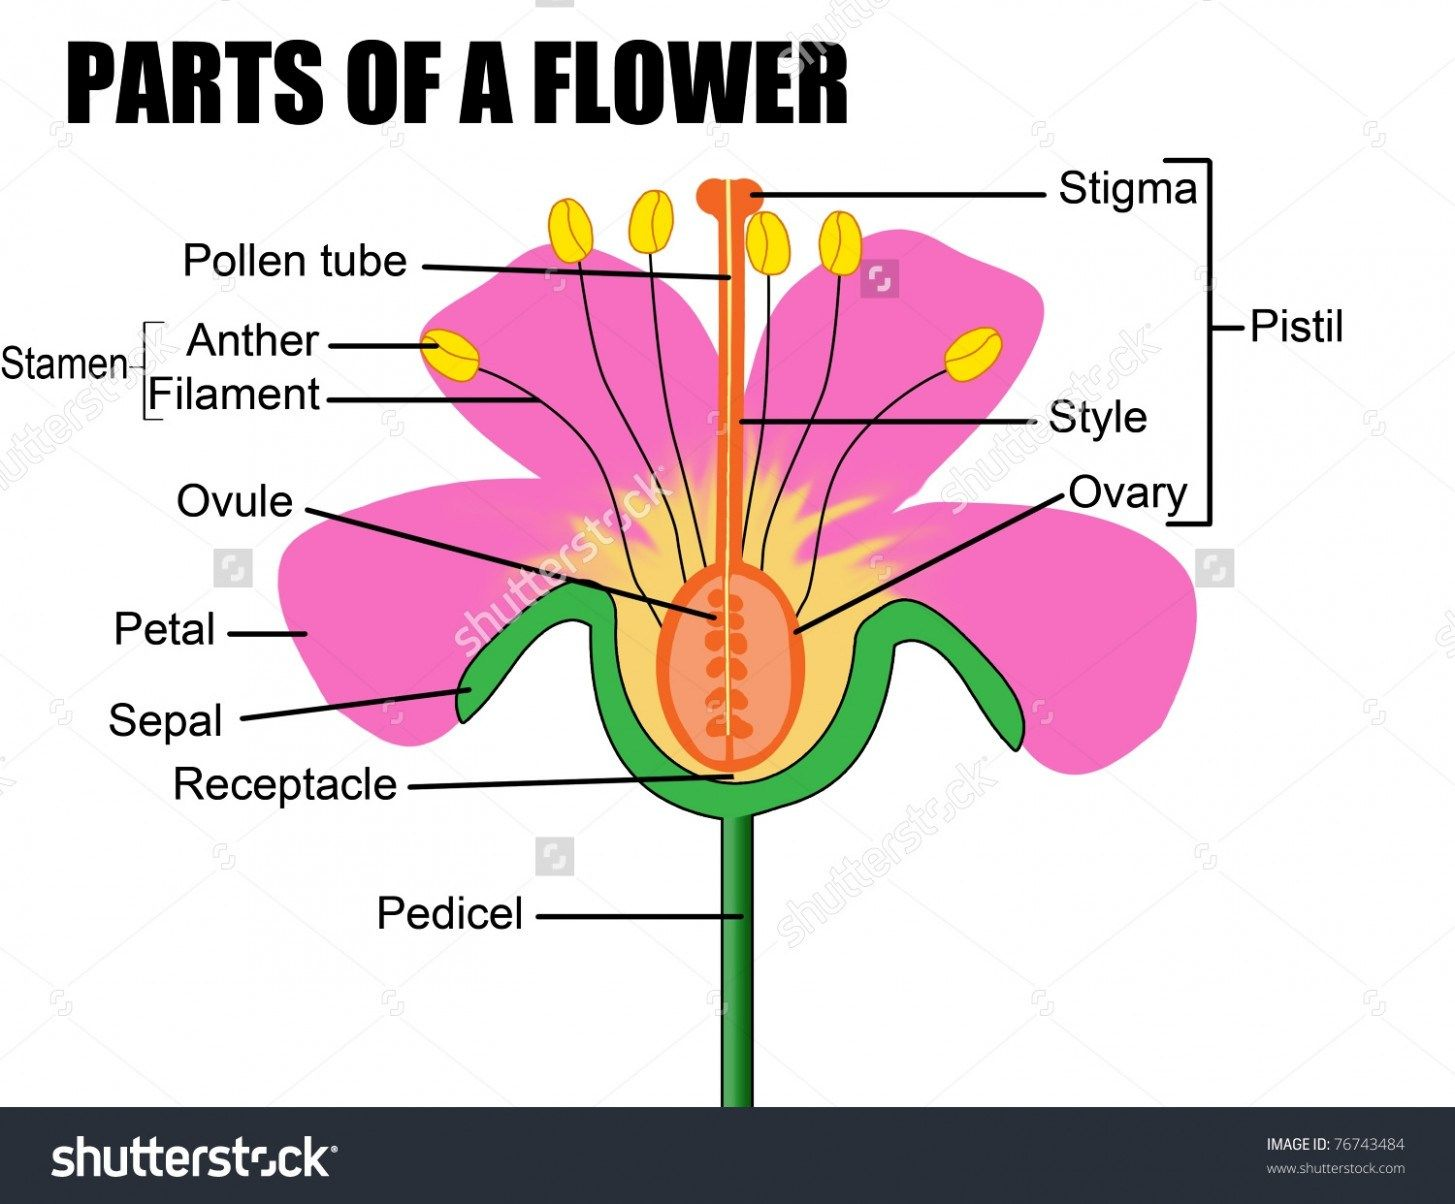 Ten Things You Didnt Know About Female Flower Reproductive Organ Female Flower Reproductive Organ Https Parts Of A Flower Diagram Of A Flower Flower Science